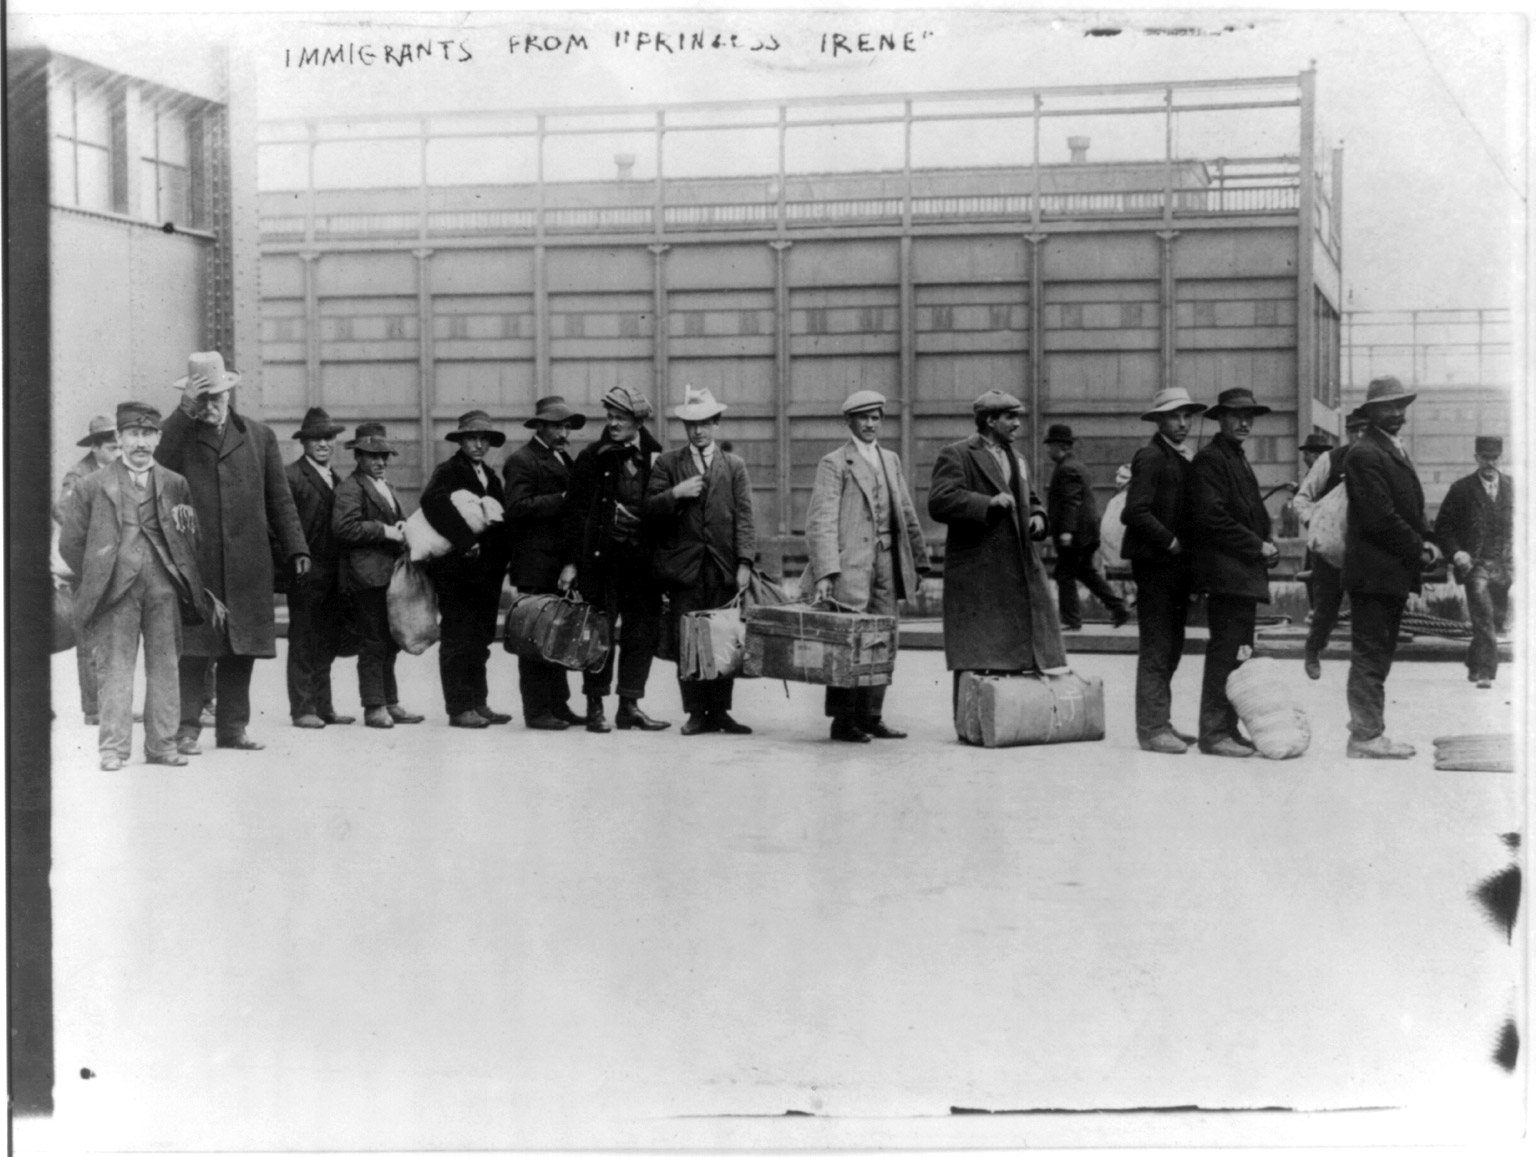 Immigrants from  Princess Irene,  Ellis Island, 1911.